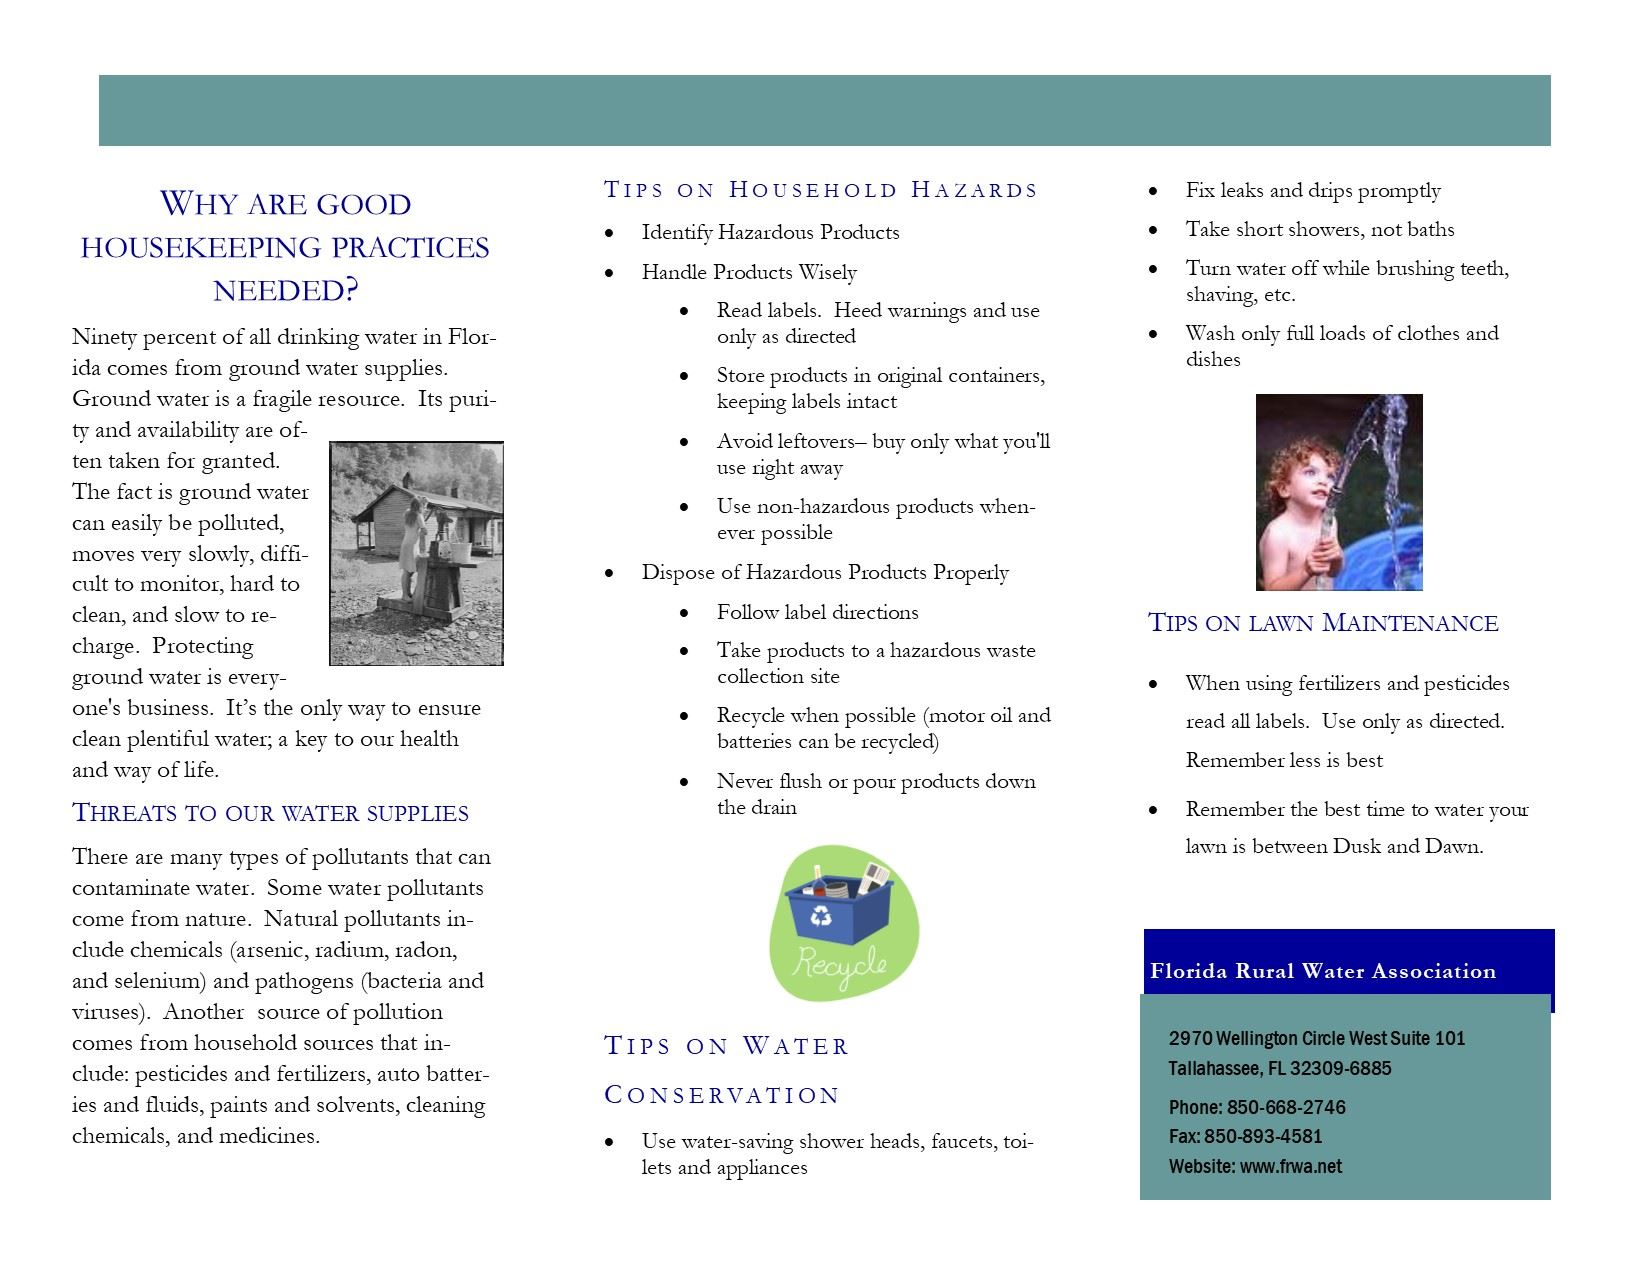 Good Housekeeping Practices Brochure Side 2